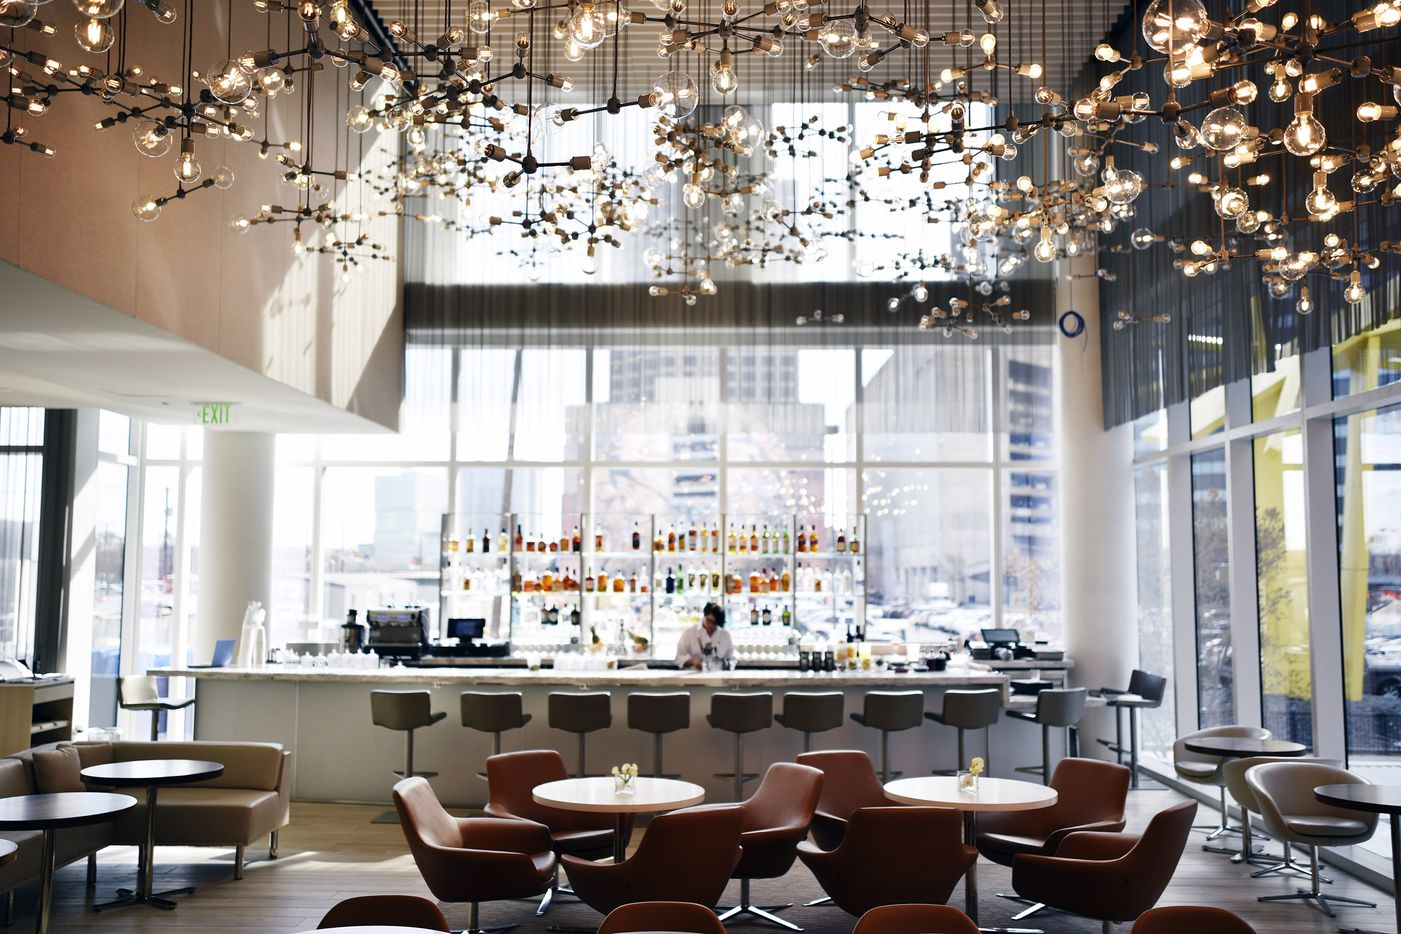 The main dining and bar area at the new restaurant Ellie's inside of the Hall Arts Hotel in downtown Dallas, Dec. 04, 2019.